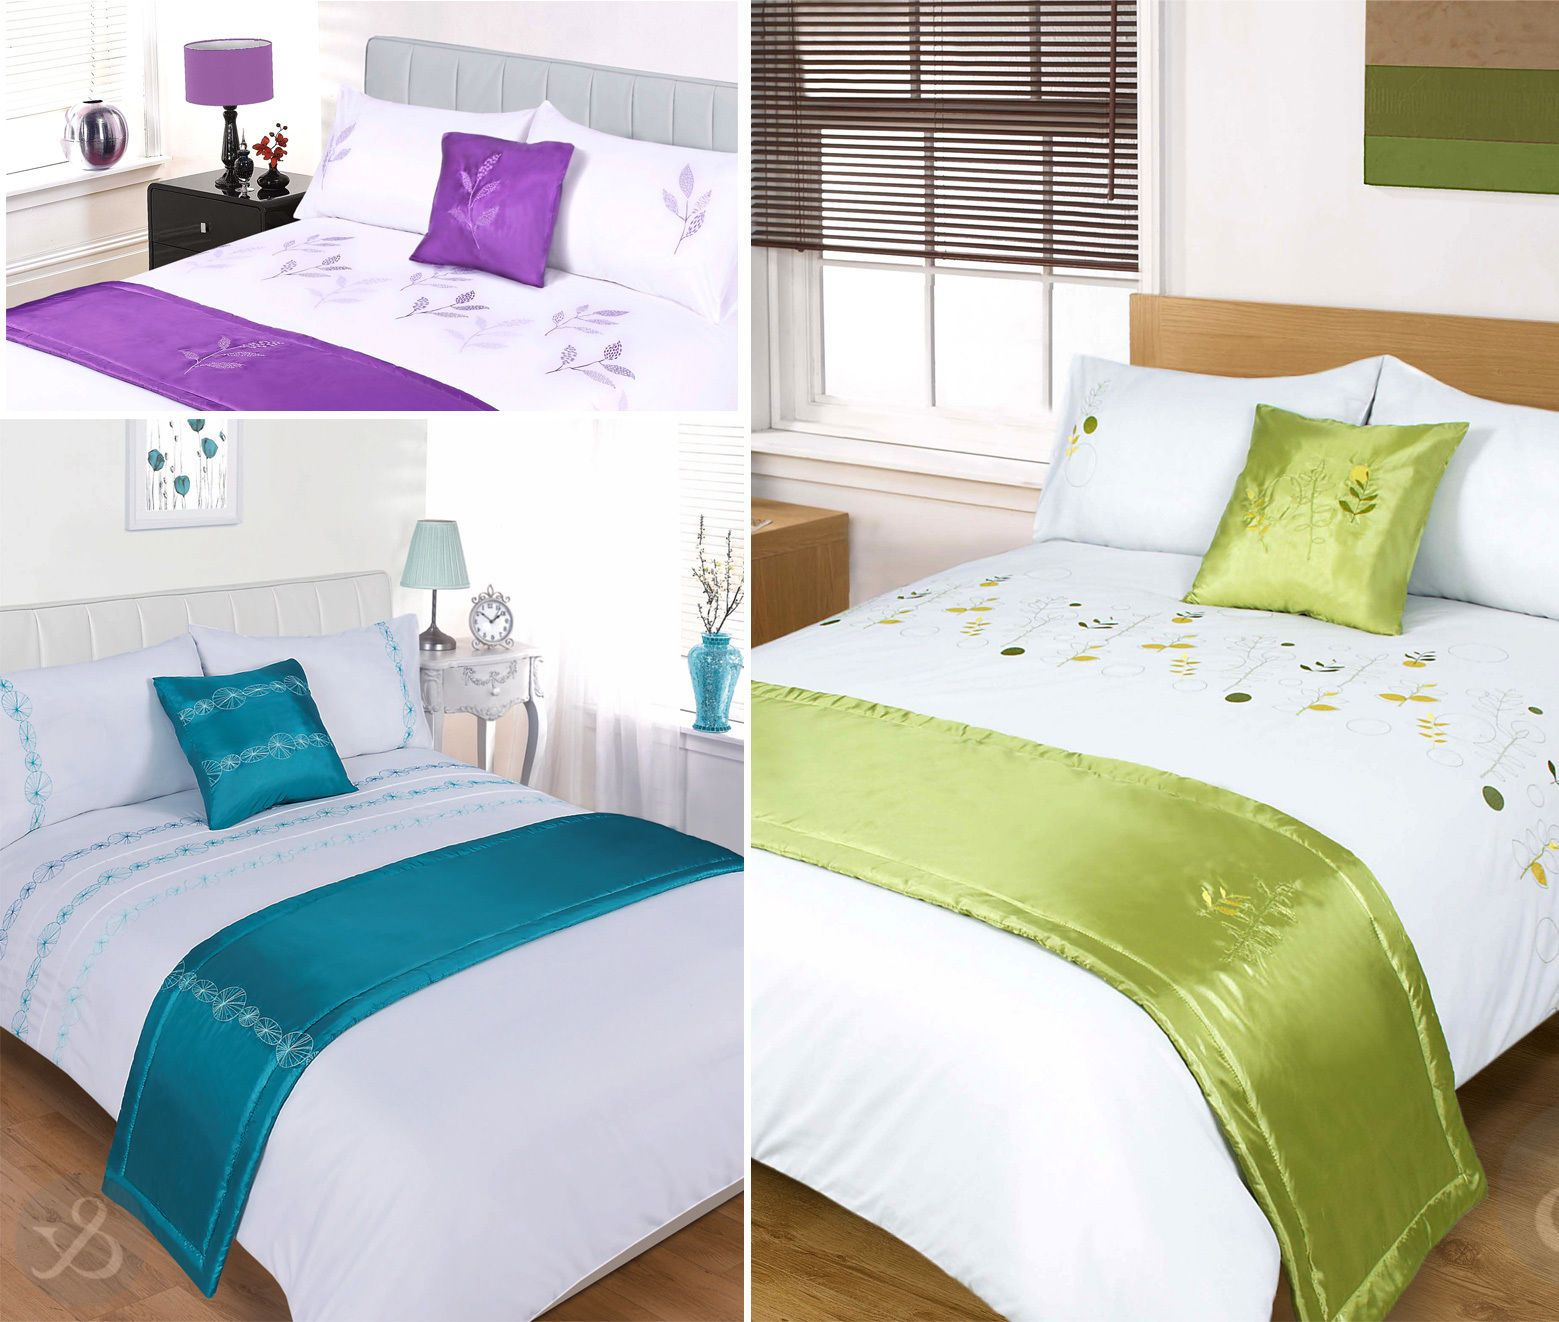 5Pc Luxury Embroidered Duvet Cover Sets - Bedding In A Bag Bed ...